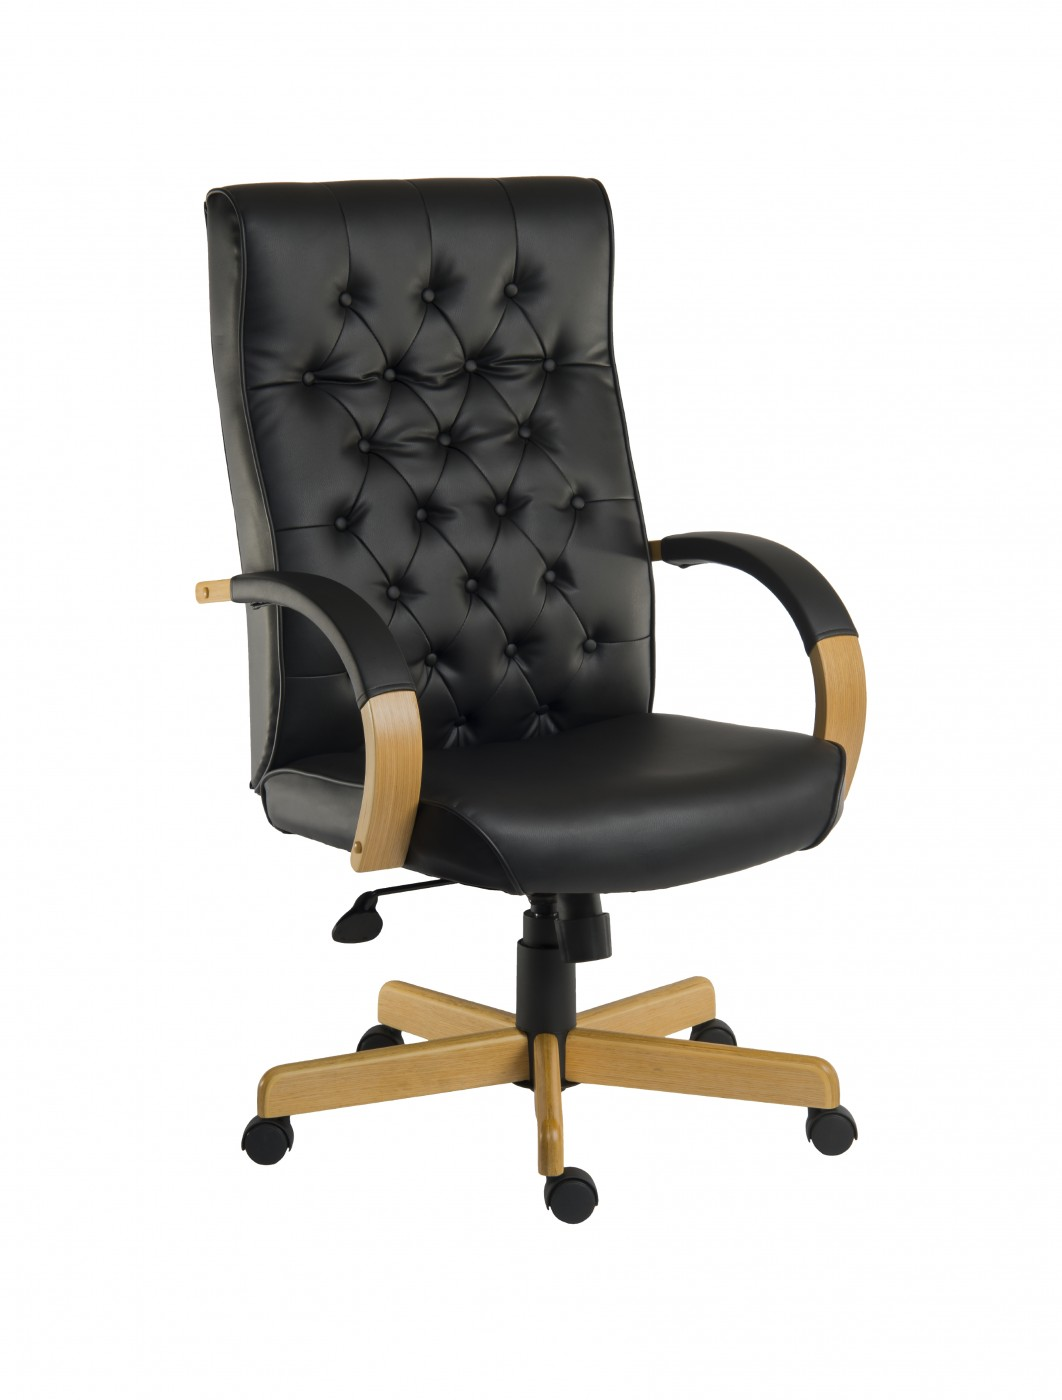 warwick noir leather executive chair b8501m 121 office furniture